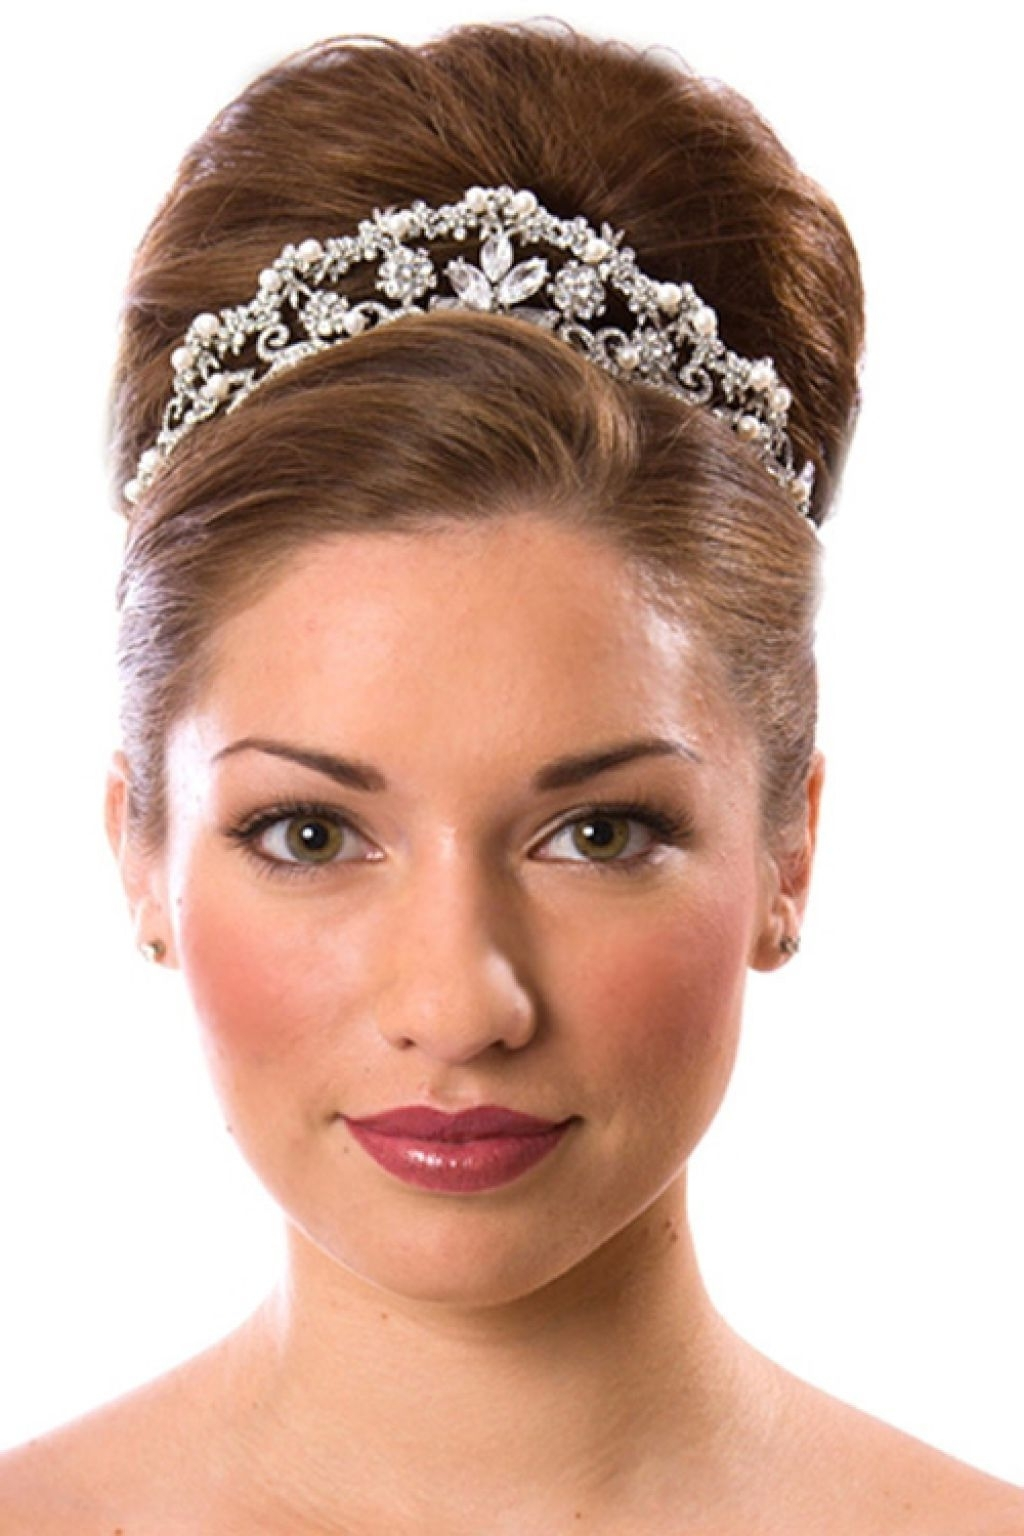 Wedding Hairstyles With Tiara Updo (View 3 of 15)